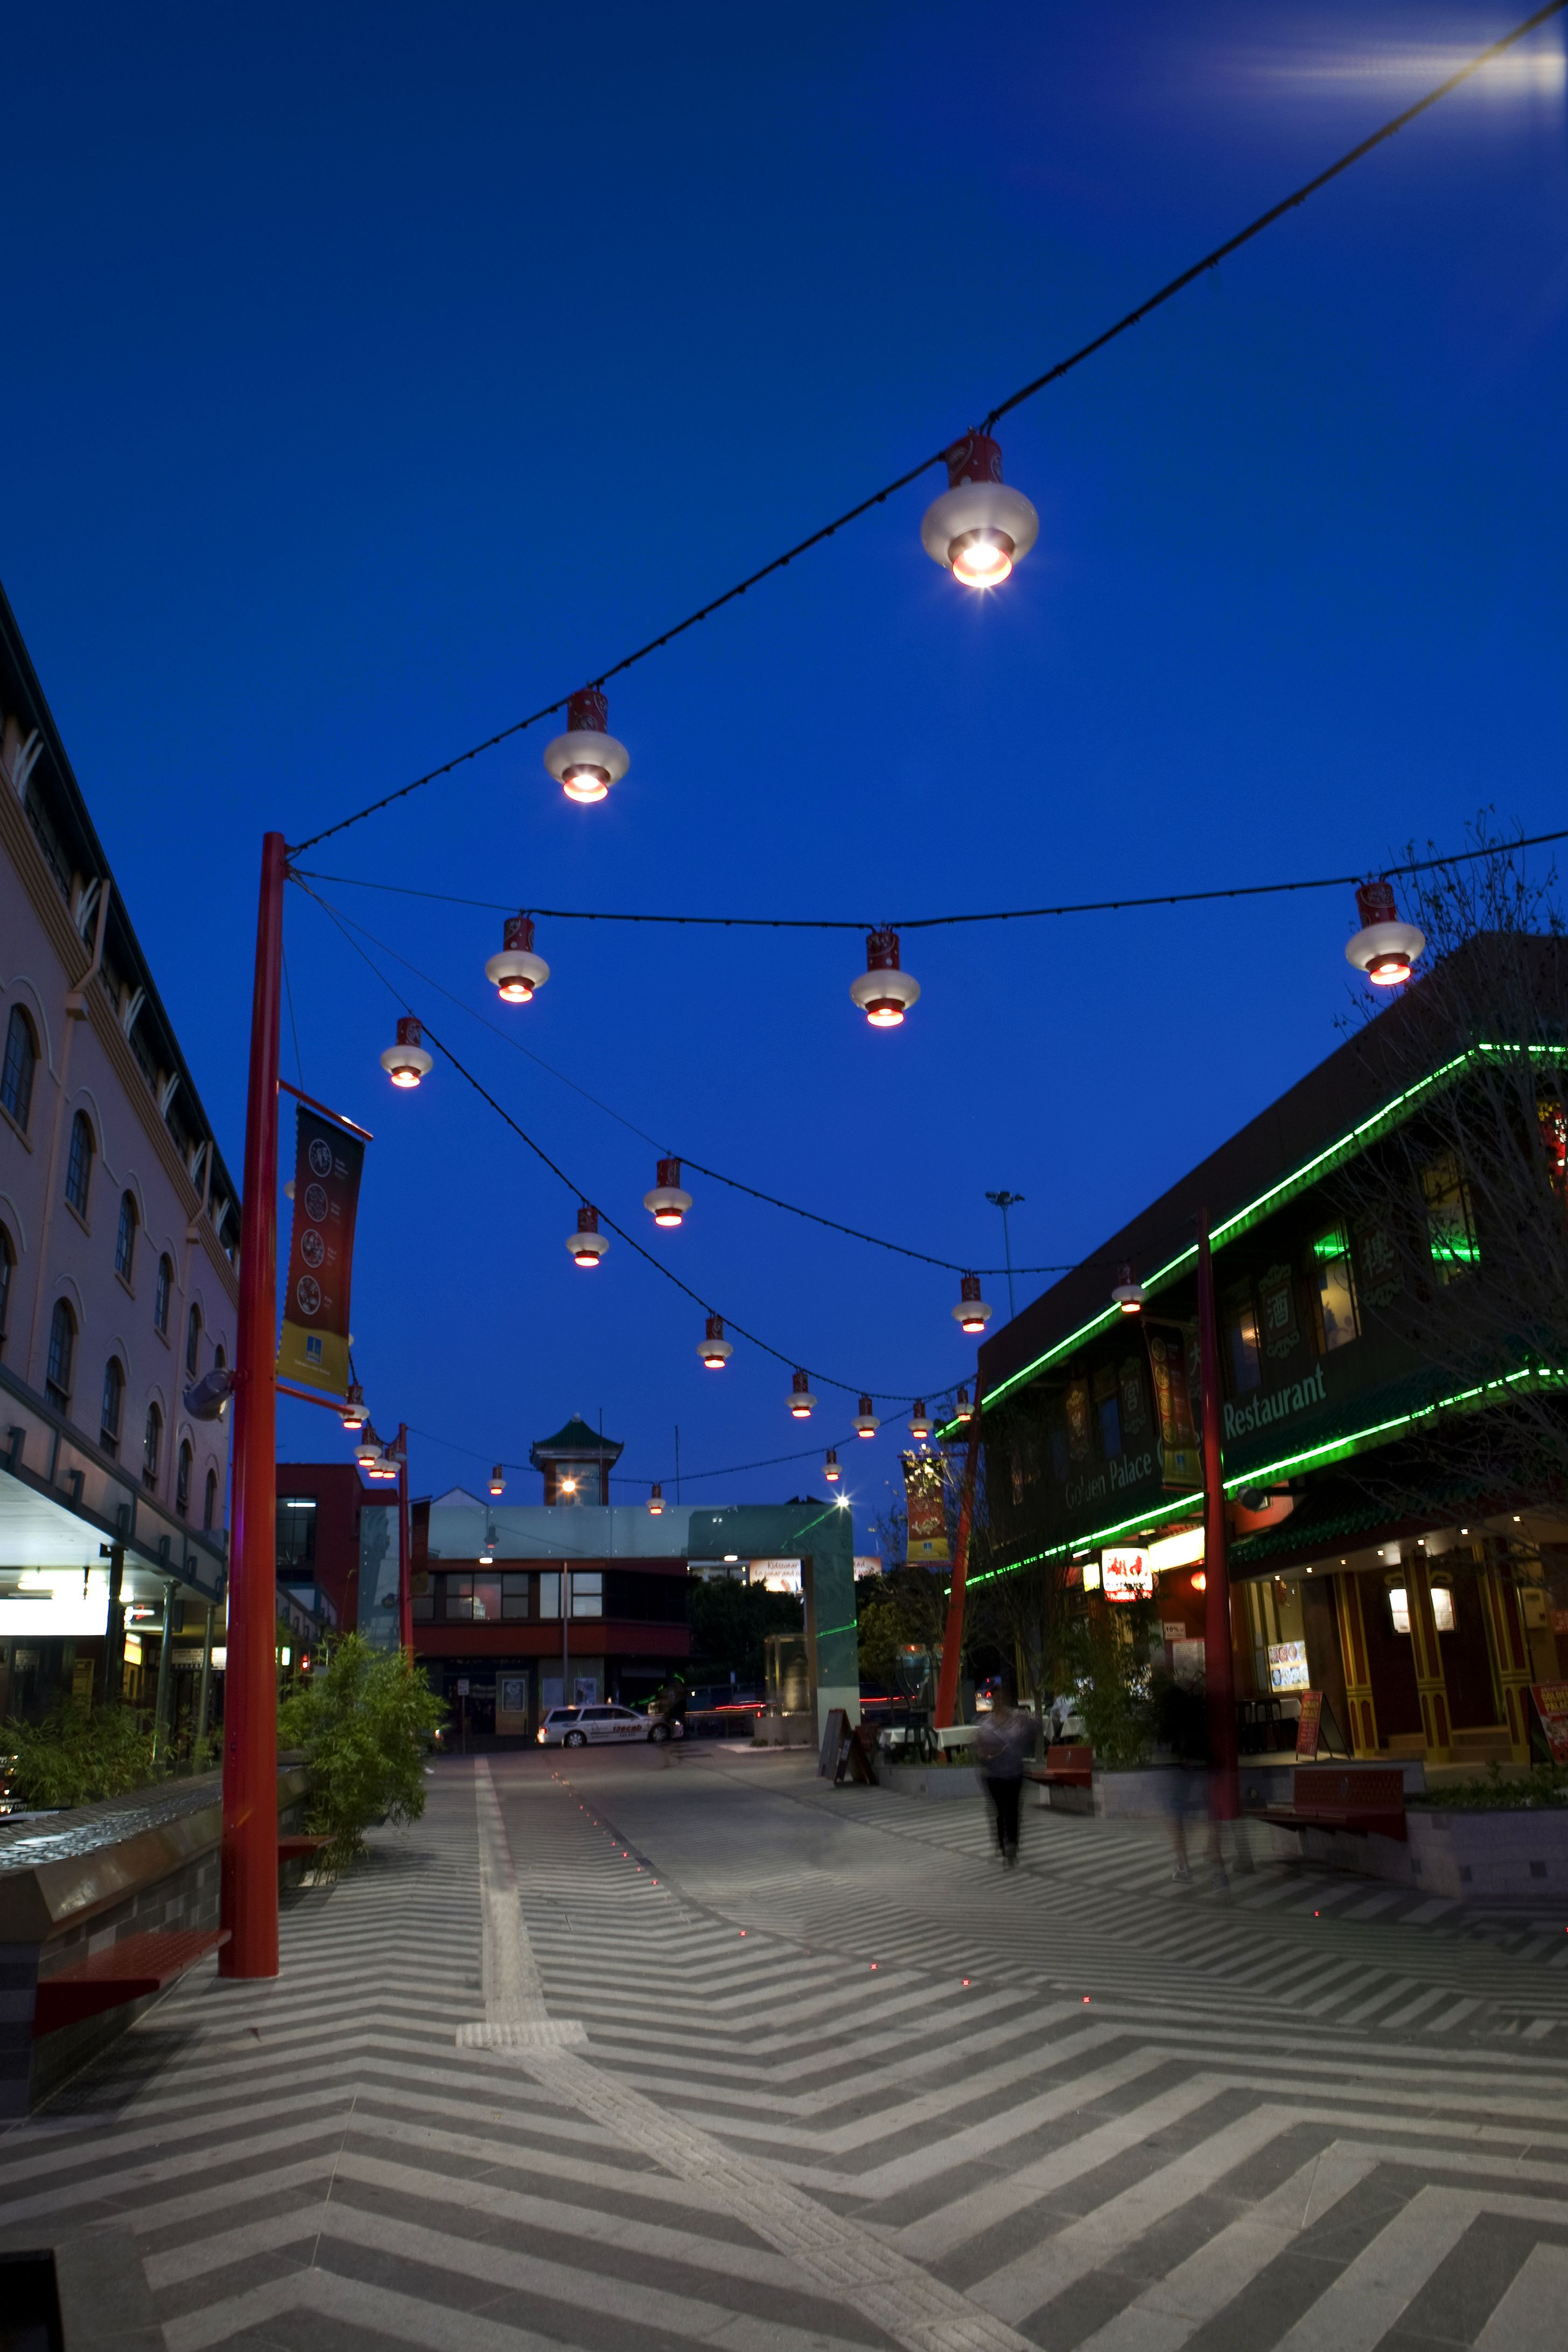 Brisbane chinatown mall a neat pole supported catenary lighting brisbane chinatown mall a neat pole supported catenary lighting structure ronstan completed in 2010 aloadofball Image collections